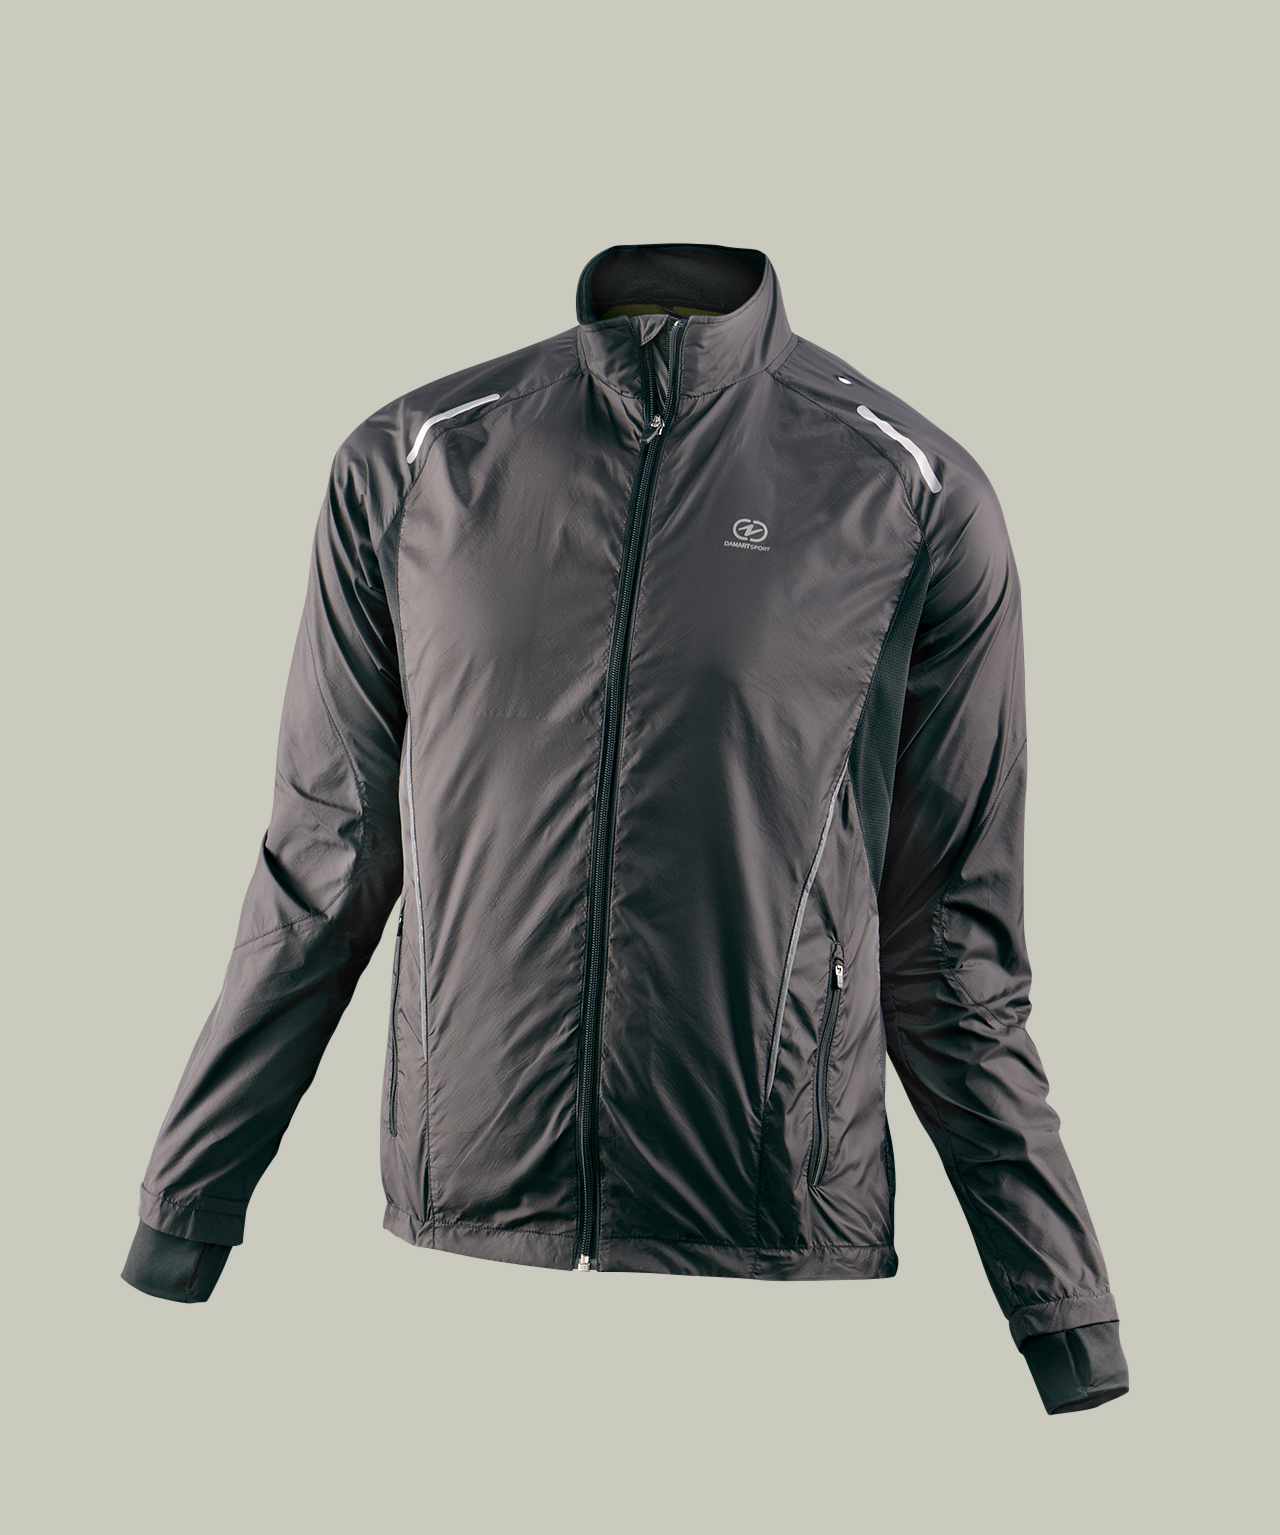 Chaqueta impermeable running hombre - Negro